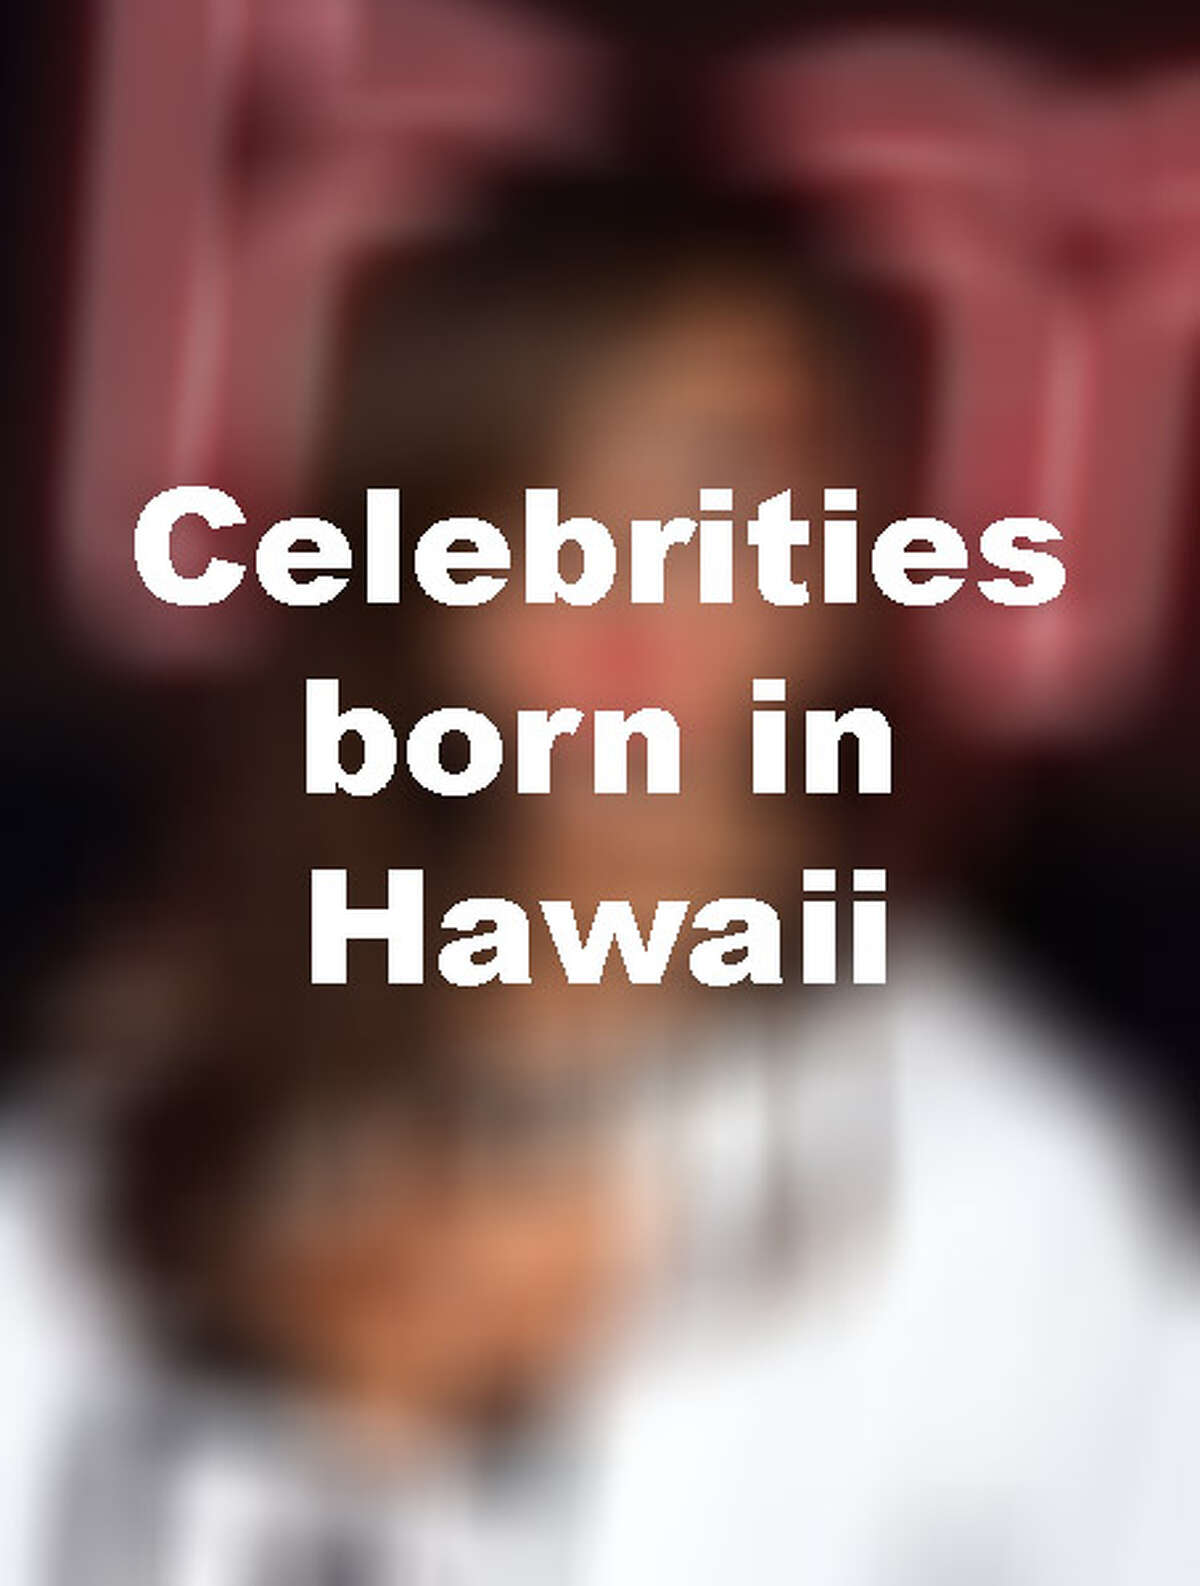 They may have become famous in New York, Hollywood or elsewhere, but these celebs are still proud to say they were born in Hawaii.